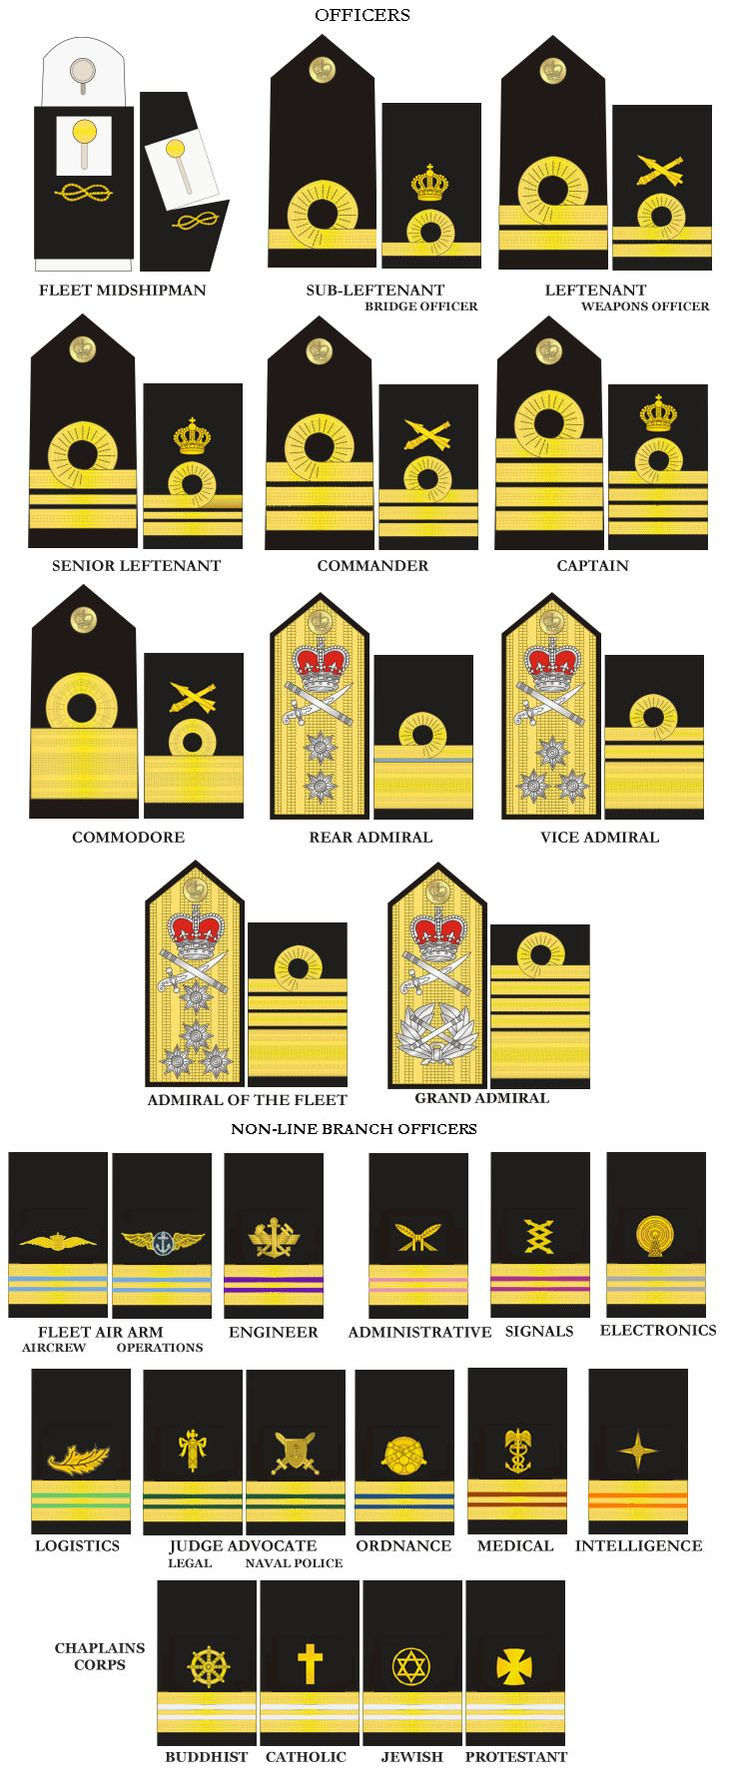 17 Best Images About The Royal Navy On Pinterest Queen